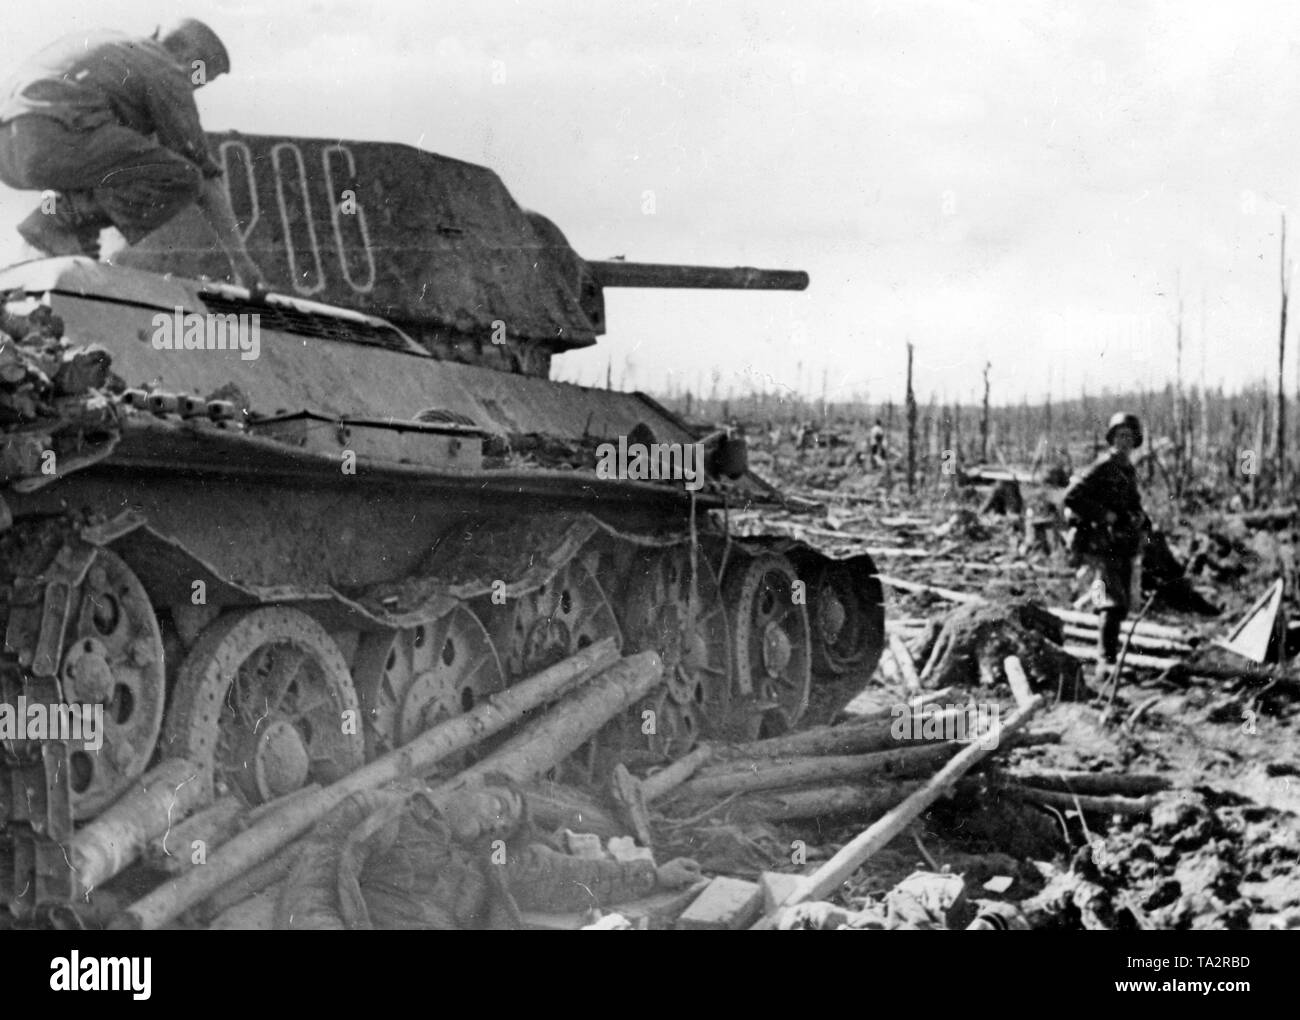 A German soldier climbs a shot down T-34 on the Volkhov Front. Next to it, a killed soldier lying on the ground. The fightings destroyed vast areas of the forest. Photo of the Propaganda Company (PK): war correspondent Schuerer. - Stock Image